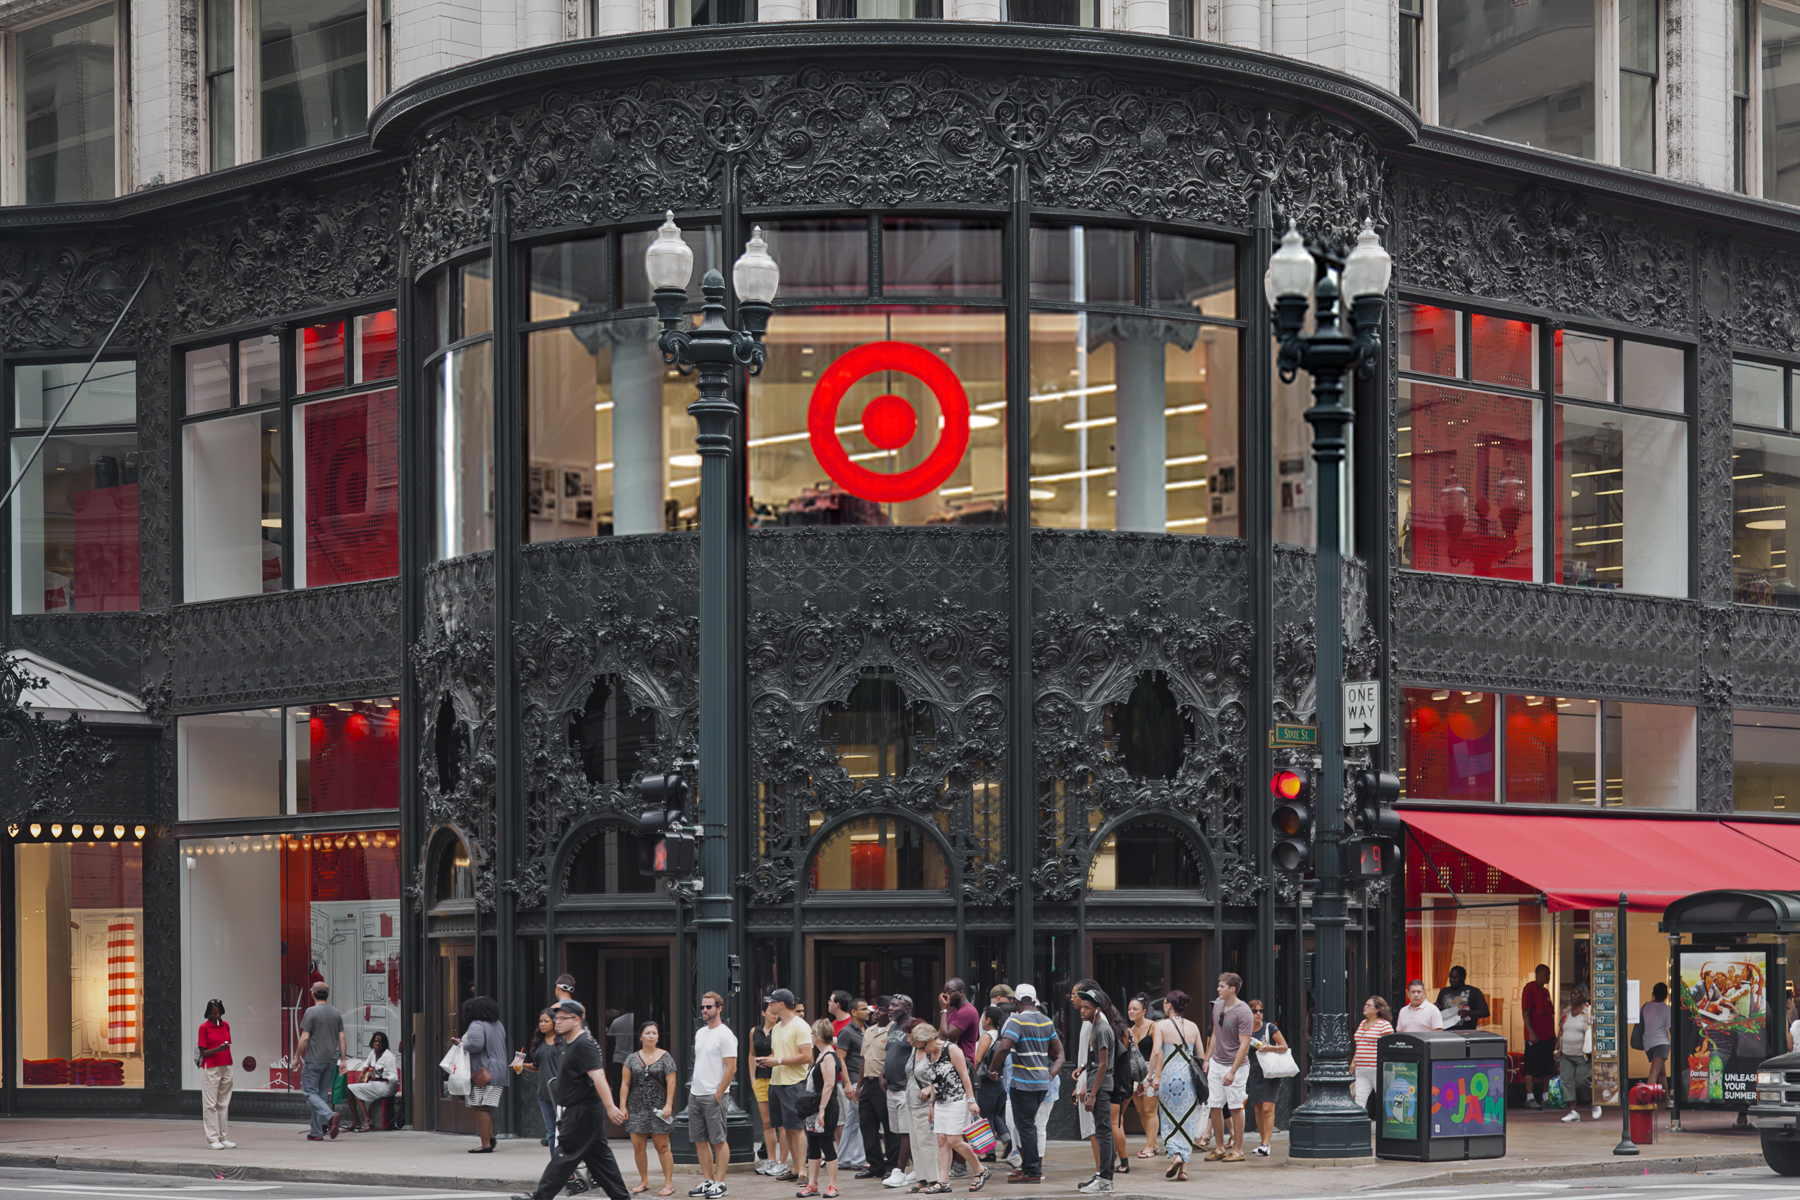 A Target store in Chicago